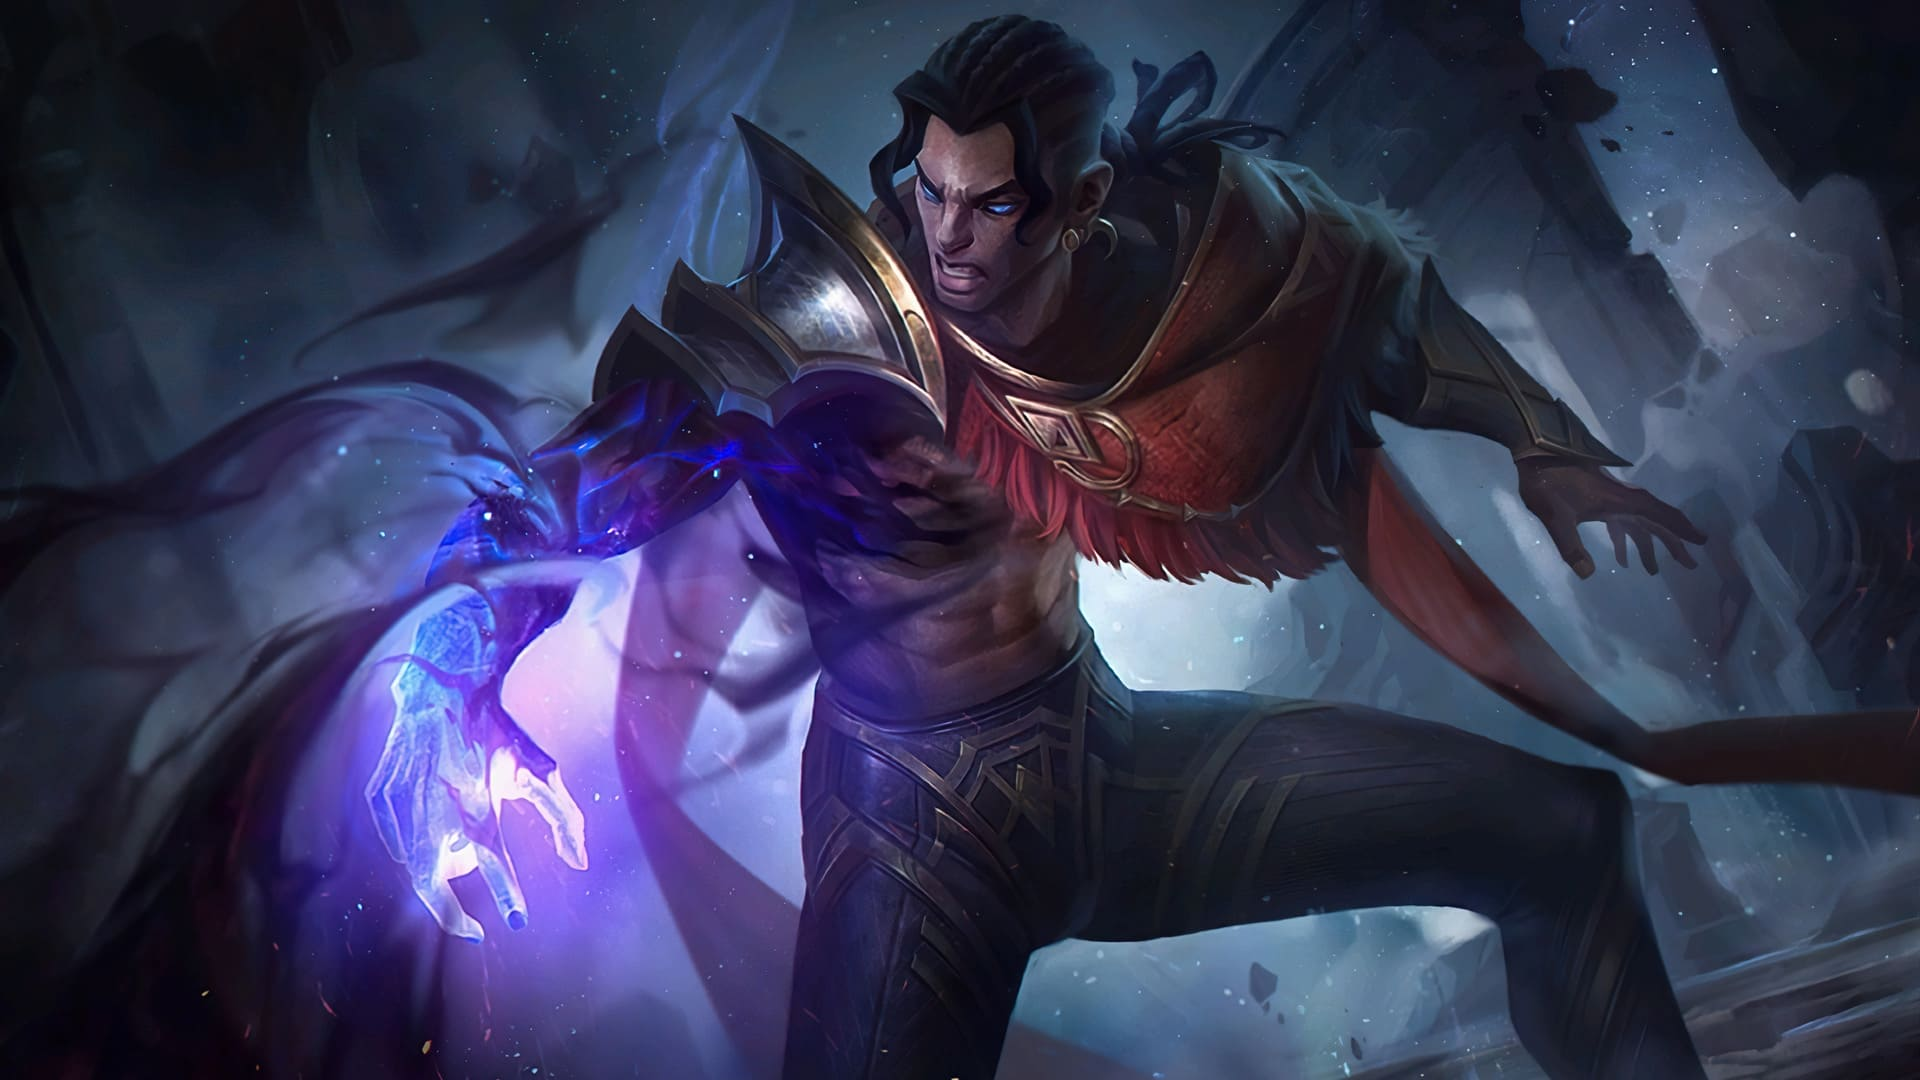 Gambar Brody Mobile Legends HD for PC